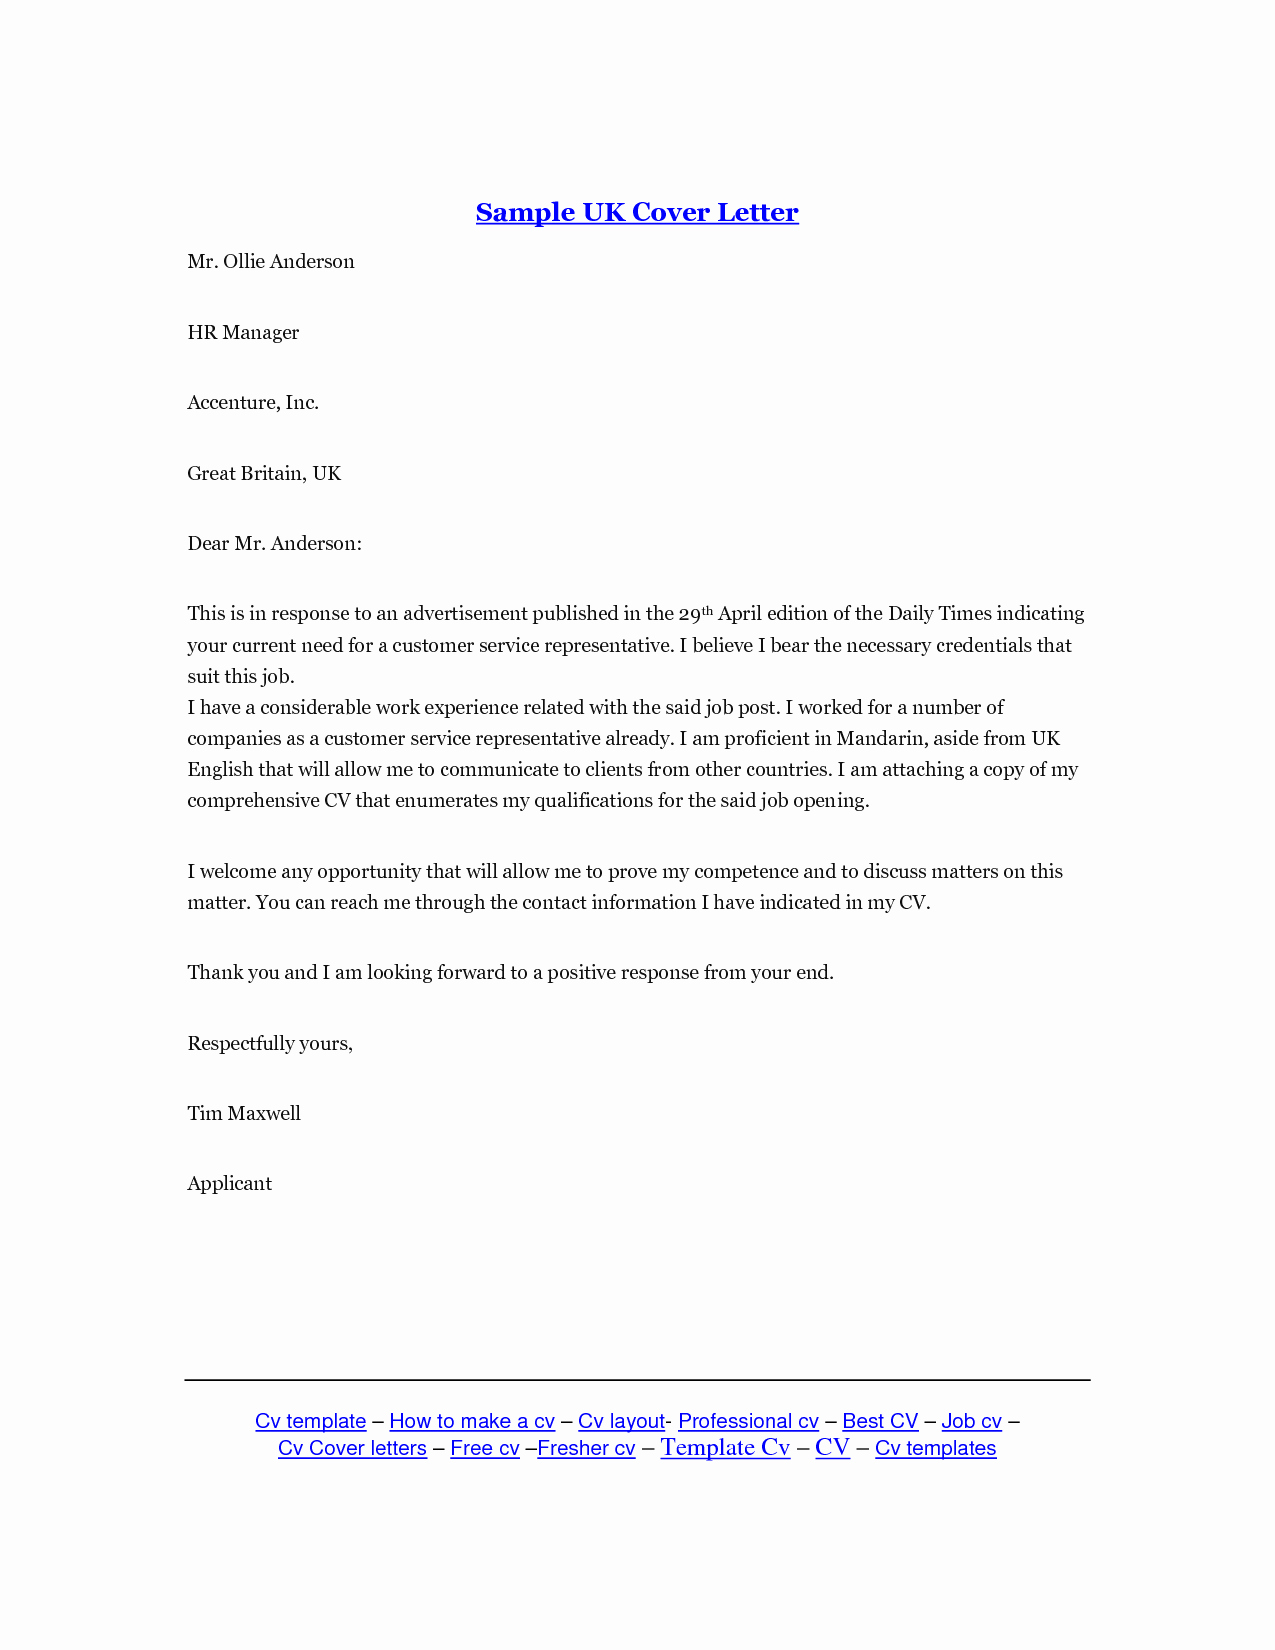 Template for Cover Letter Free Lovely Letter Template Uk